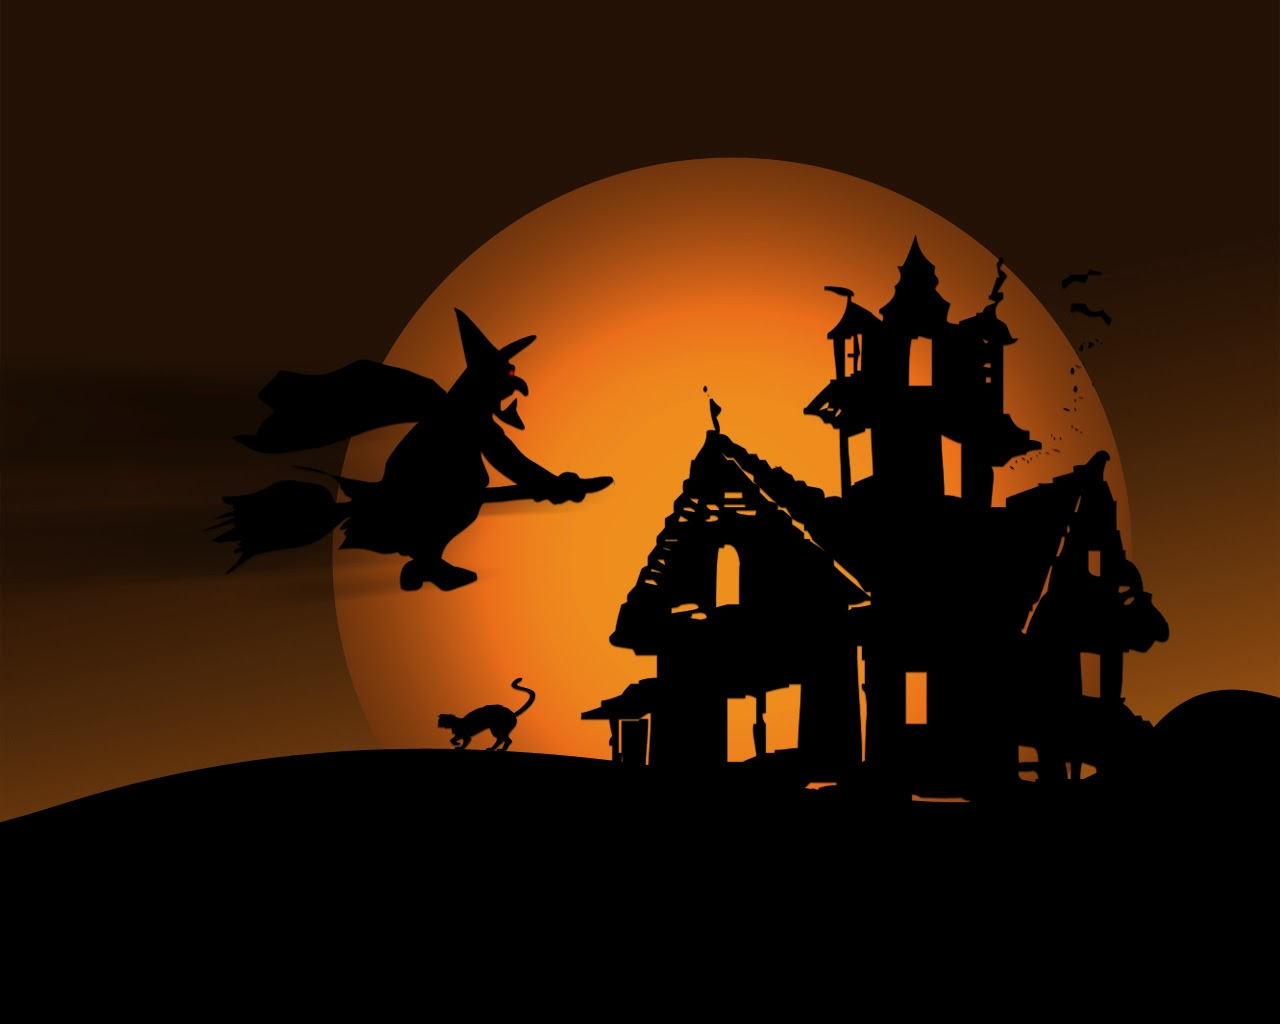 Hd Wallpapers Blog: Halloween